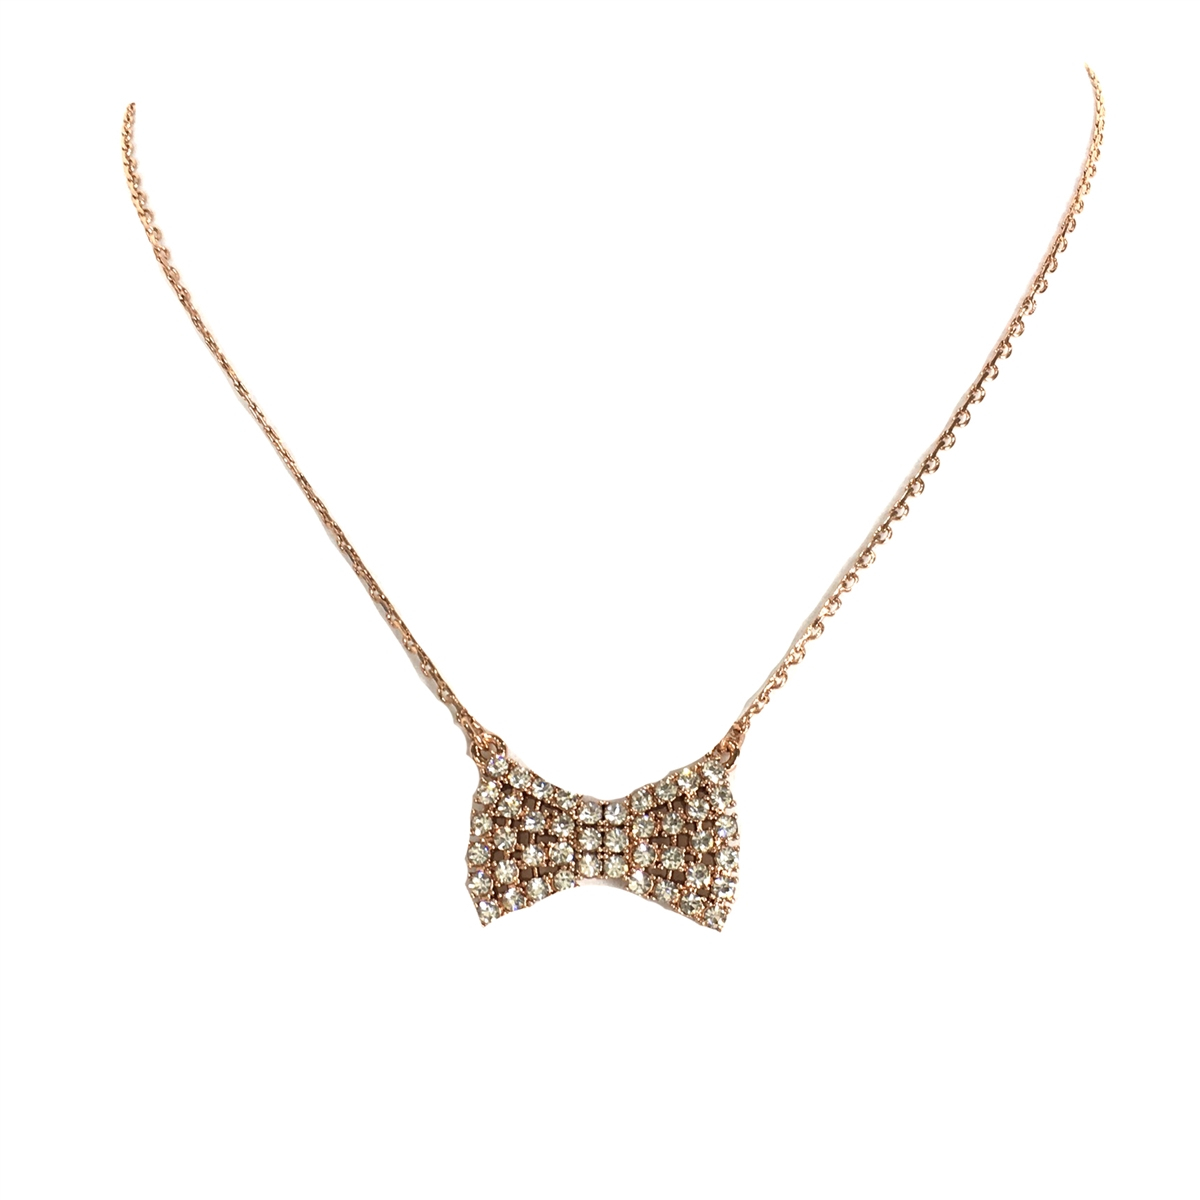 Kate Spade Sparkling Bow Pendant Necklace, Rose Gold For Most Up To Date Sparkling Bow Necklaces (View 8 of 25)